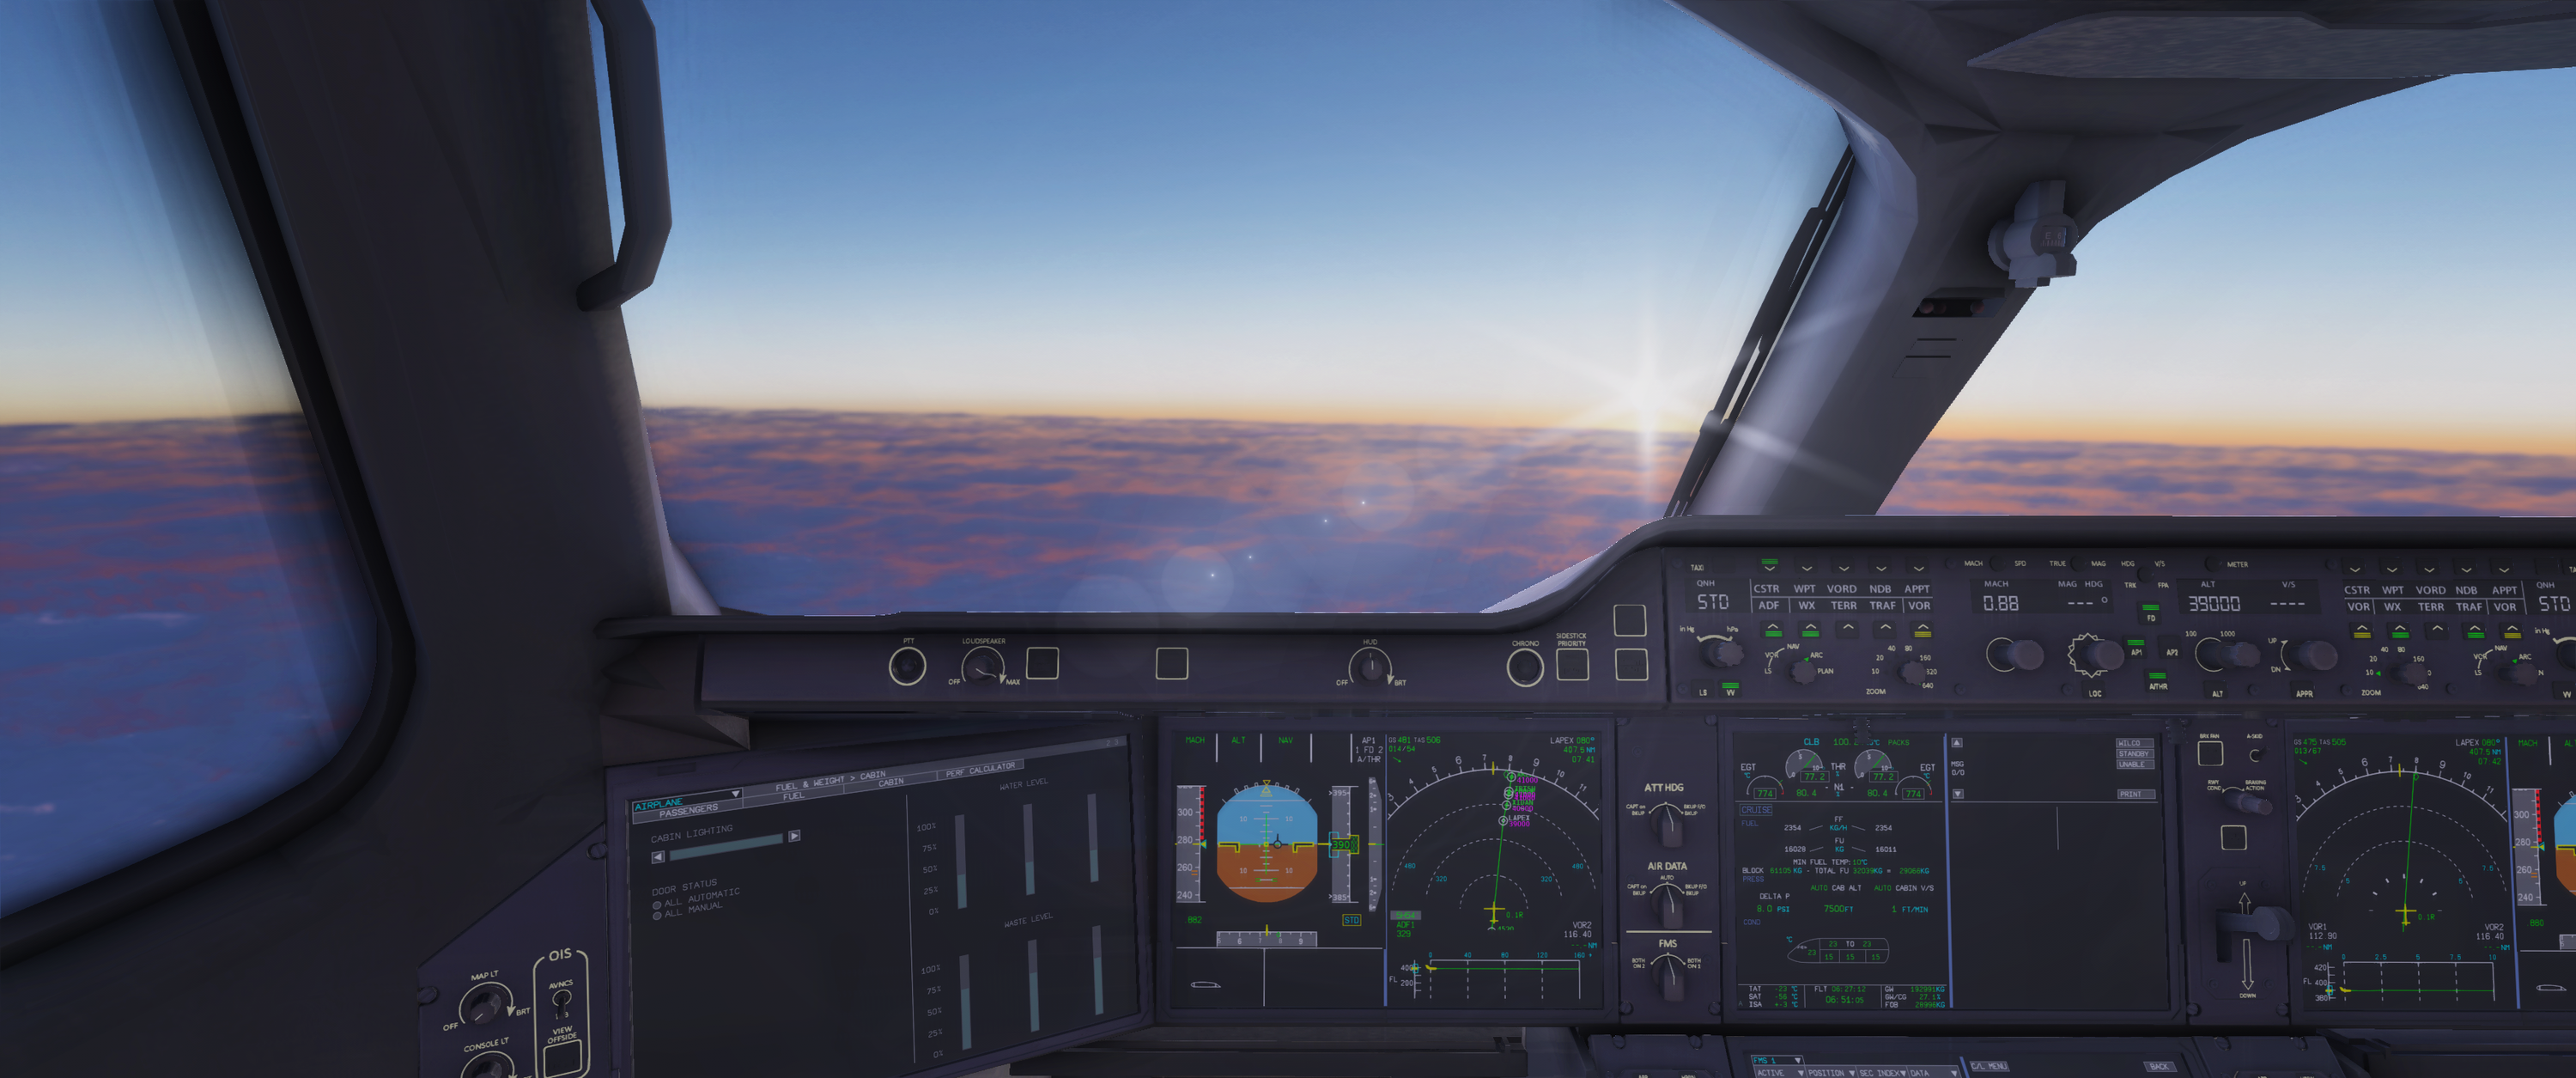 X-Plane Screenshot 2020.03.22 - 07.51.05.59.png